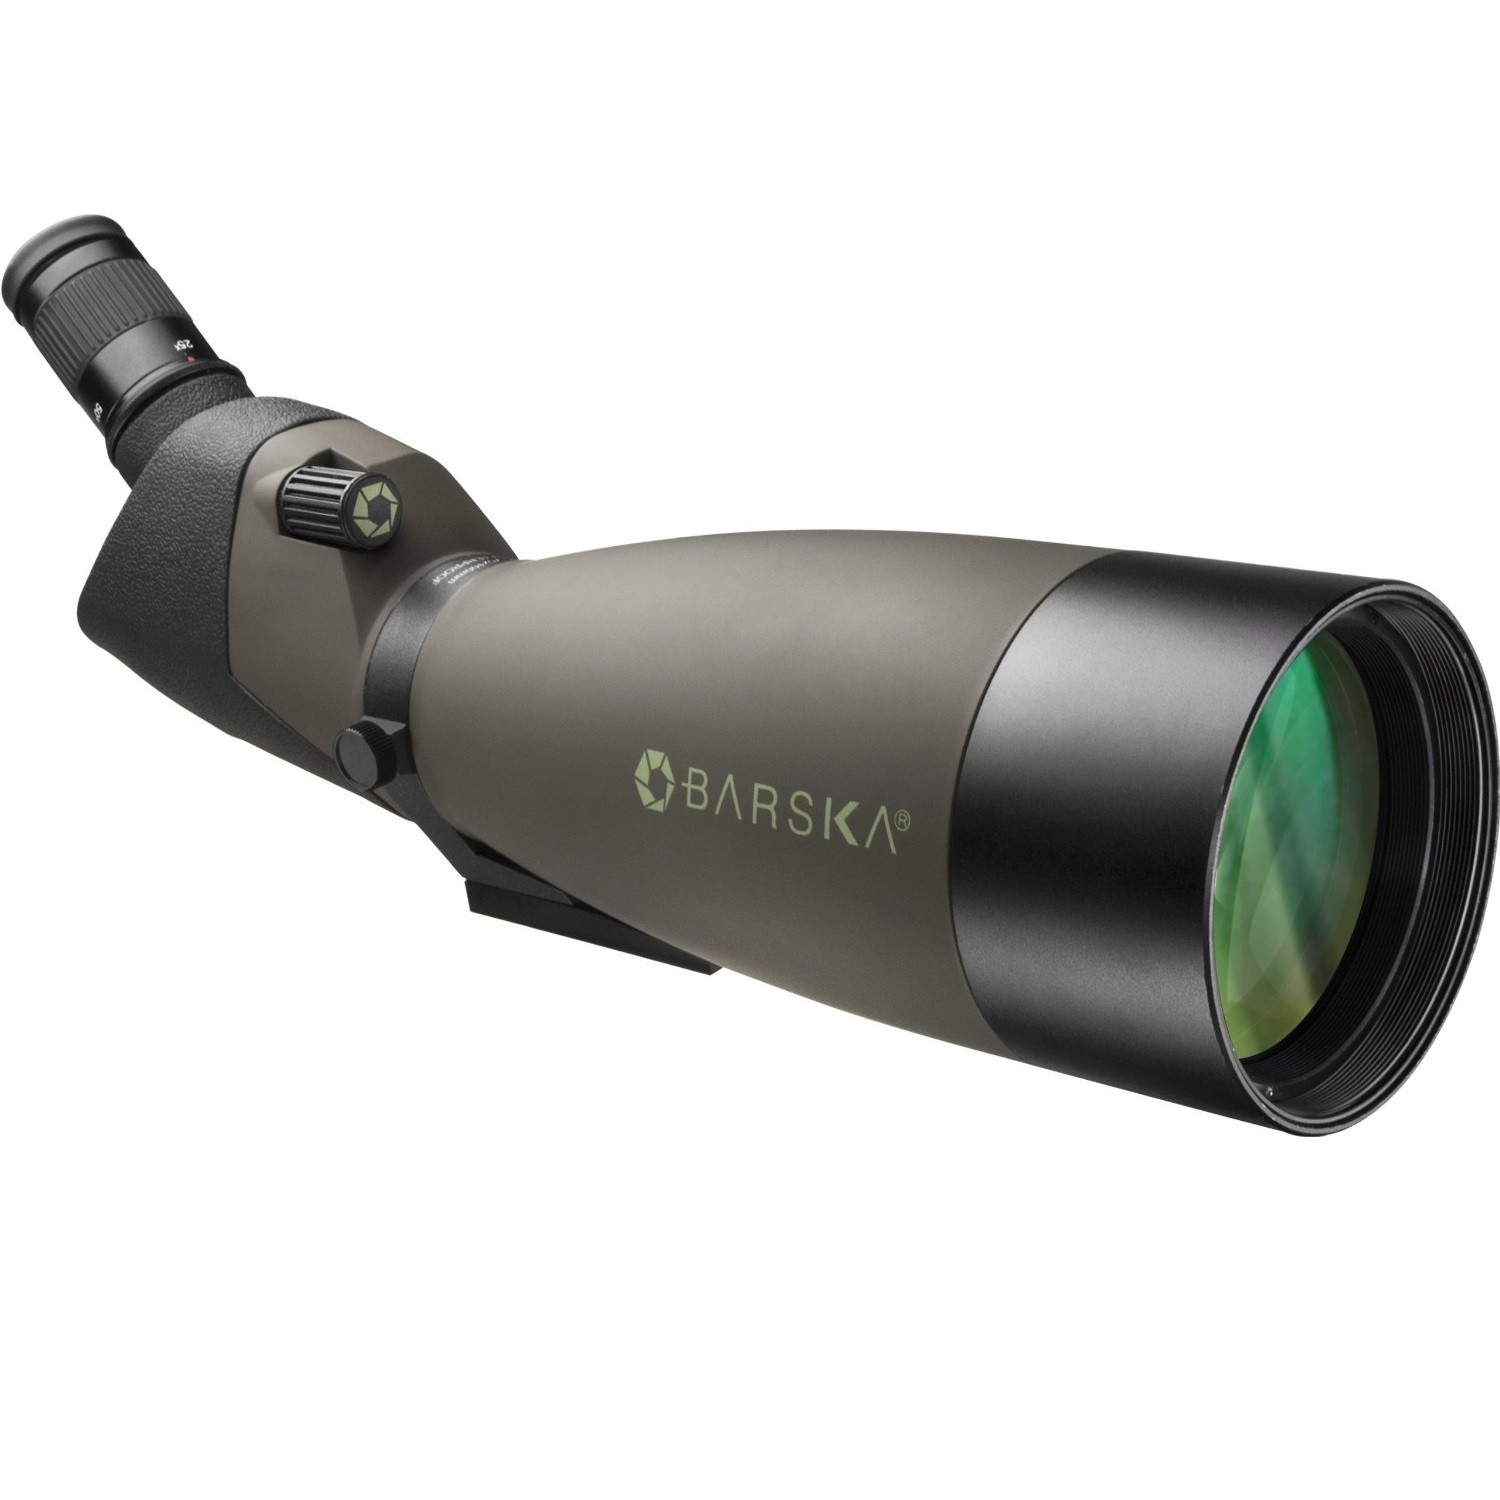 Barska 25-75x100 Blackhawk Spotting Scope with HC